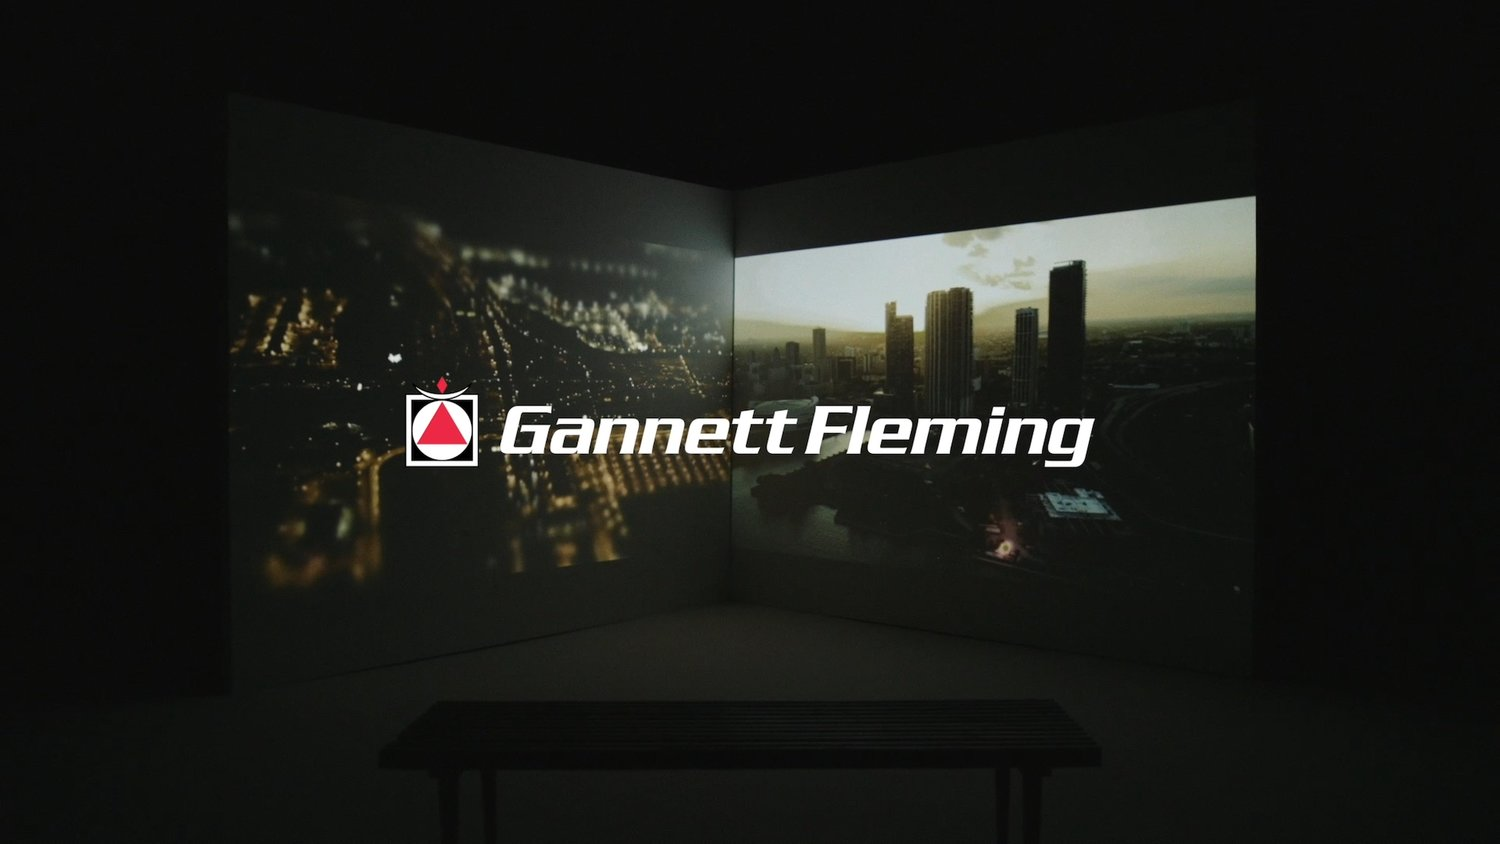 GANNETT FLEMING LOGO WITH PROJECTOR BACKGROUND